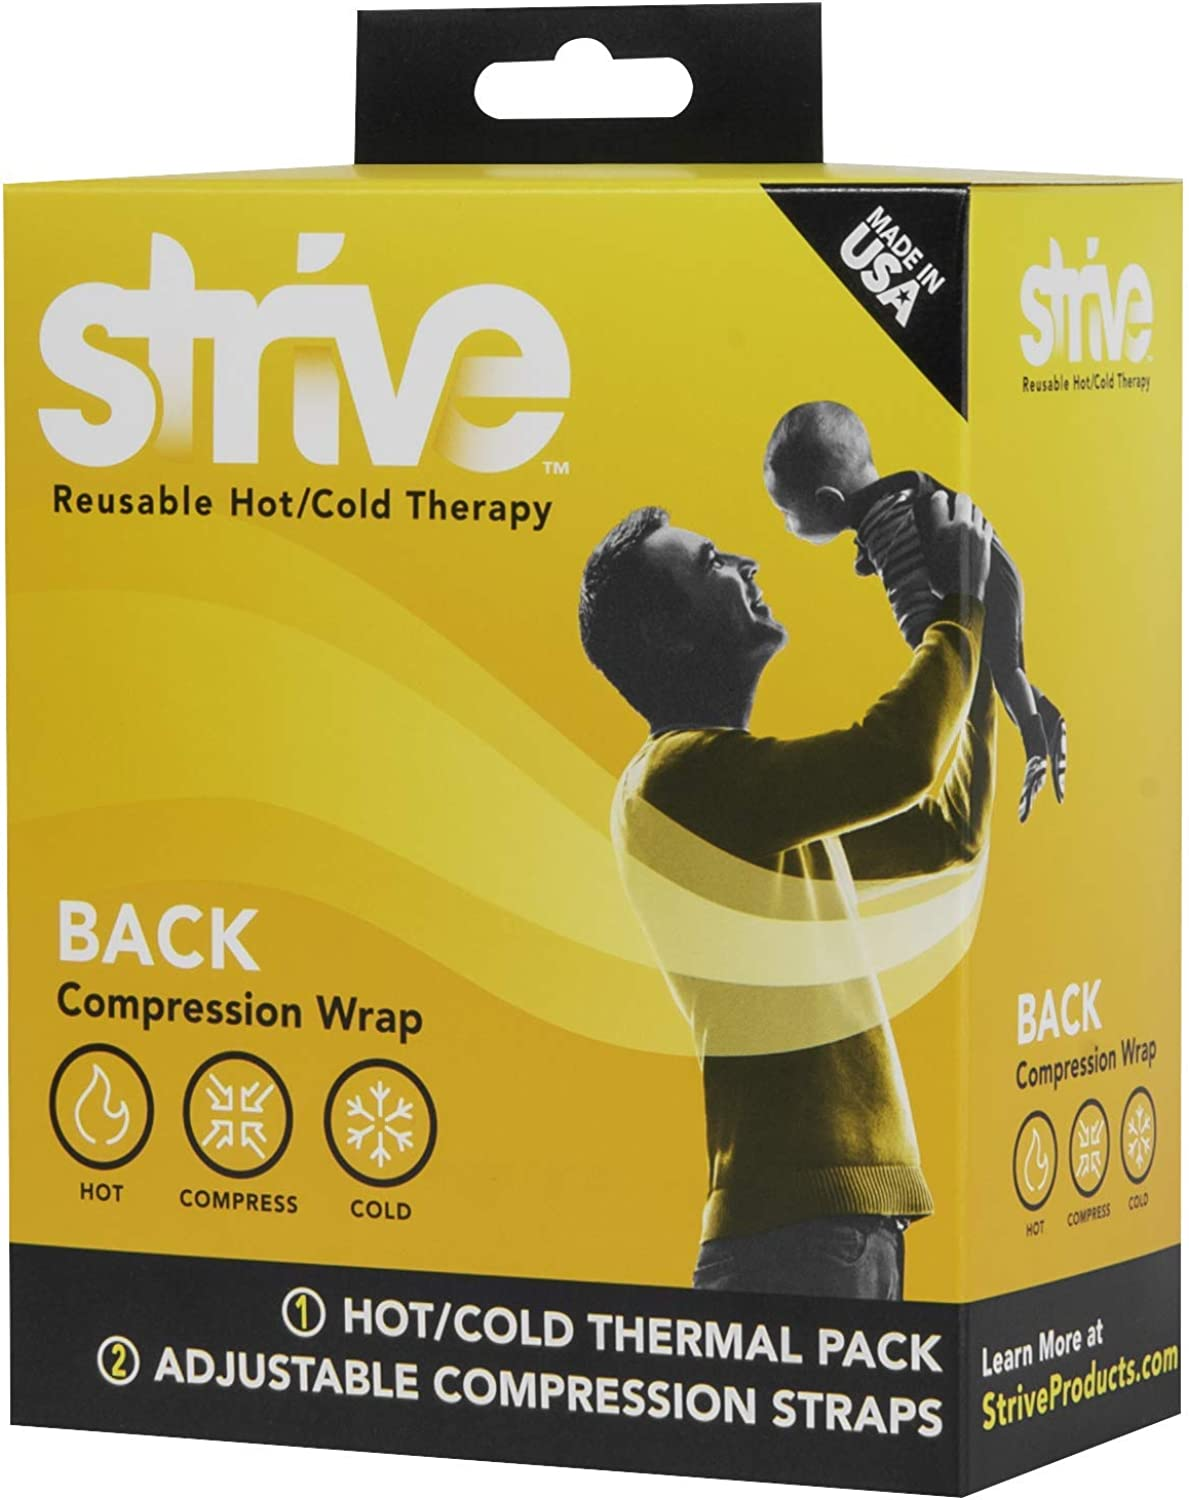 Strive Hot and Cold Compression Wrap   Reusable Gel Pack Therapy for Pain or Injury  Contours to Back with Adjustable Straps